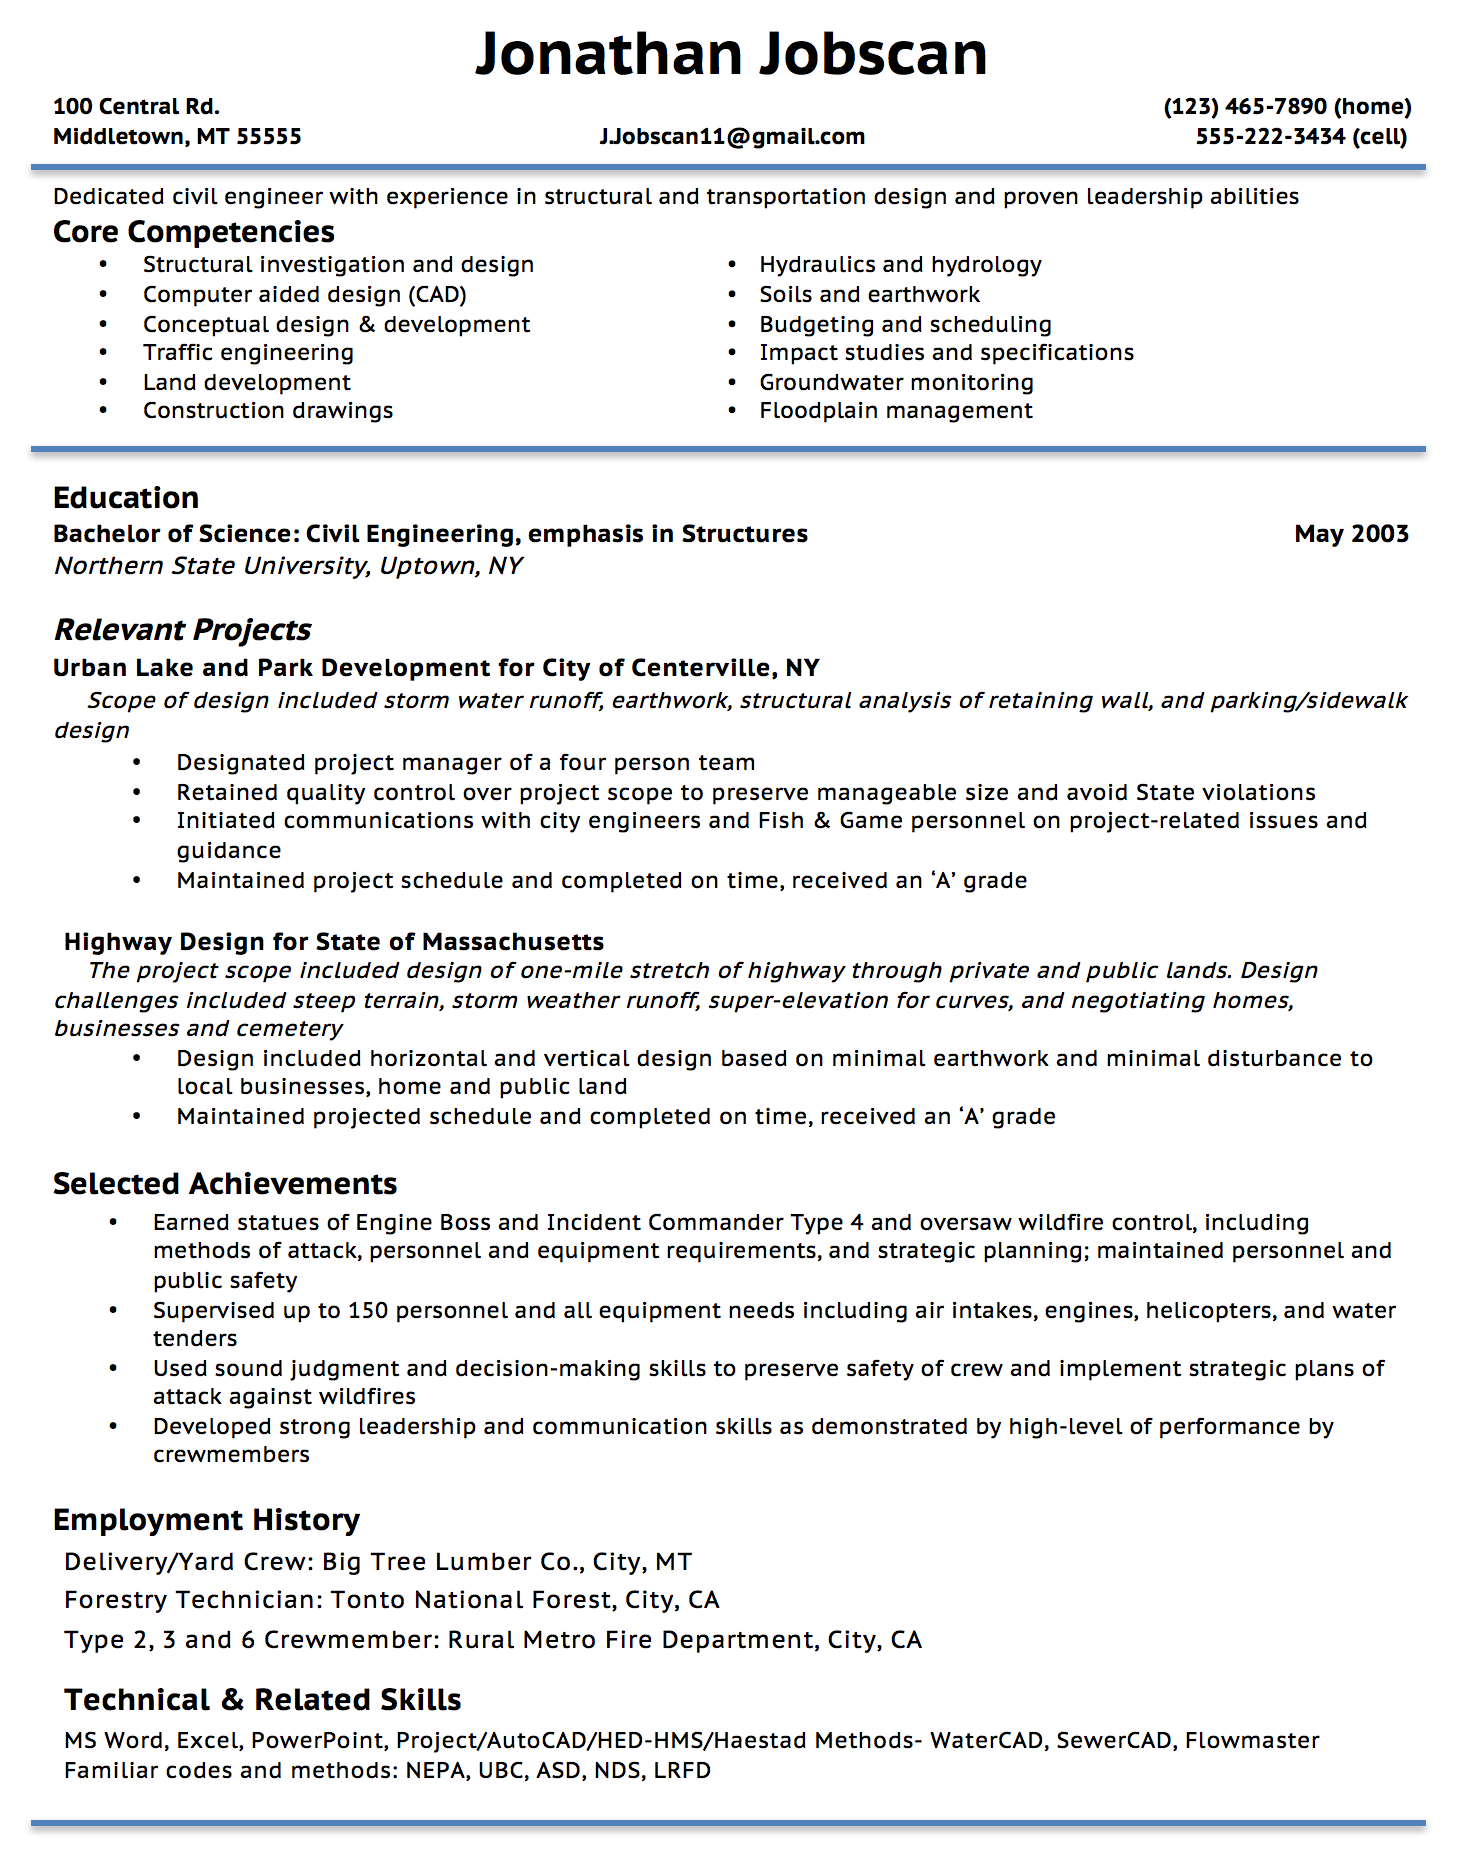 Opposenewapstandardsus  Ravishing Resume Writing Guide  Jobscan With Exciting Example Of A Functional Resume Format With Appealing What Is A Good Objective For A Resume Also Theatre Resume In Addition Resume For College Students And Customer Service Skills For Resume As Well As Resume Objective Statement Examples Additionally Best Font For A Resume From Jobscanco With Opposenewapstandardsus  Exciting Resume Writing Guide  Jobscan With Appealing Example Of A Functional Resume Format And Ravishing What Is A Good Objective For A Resume Also Theatre Resume In Addition Resume For College Students From Jobscanco